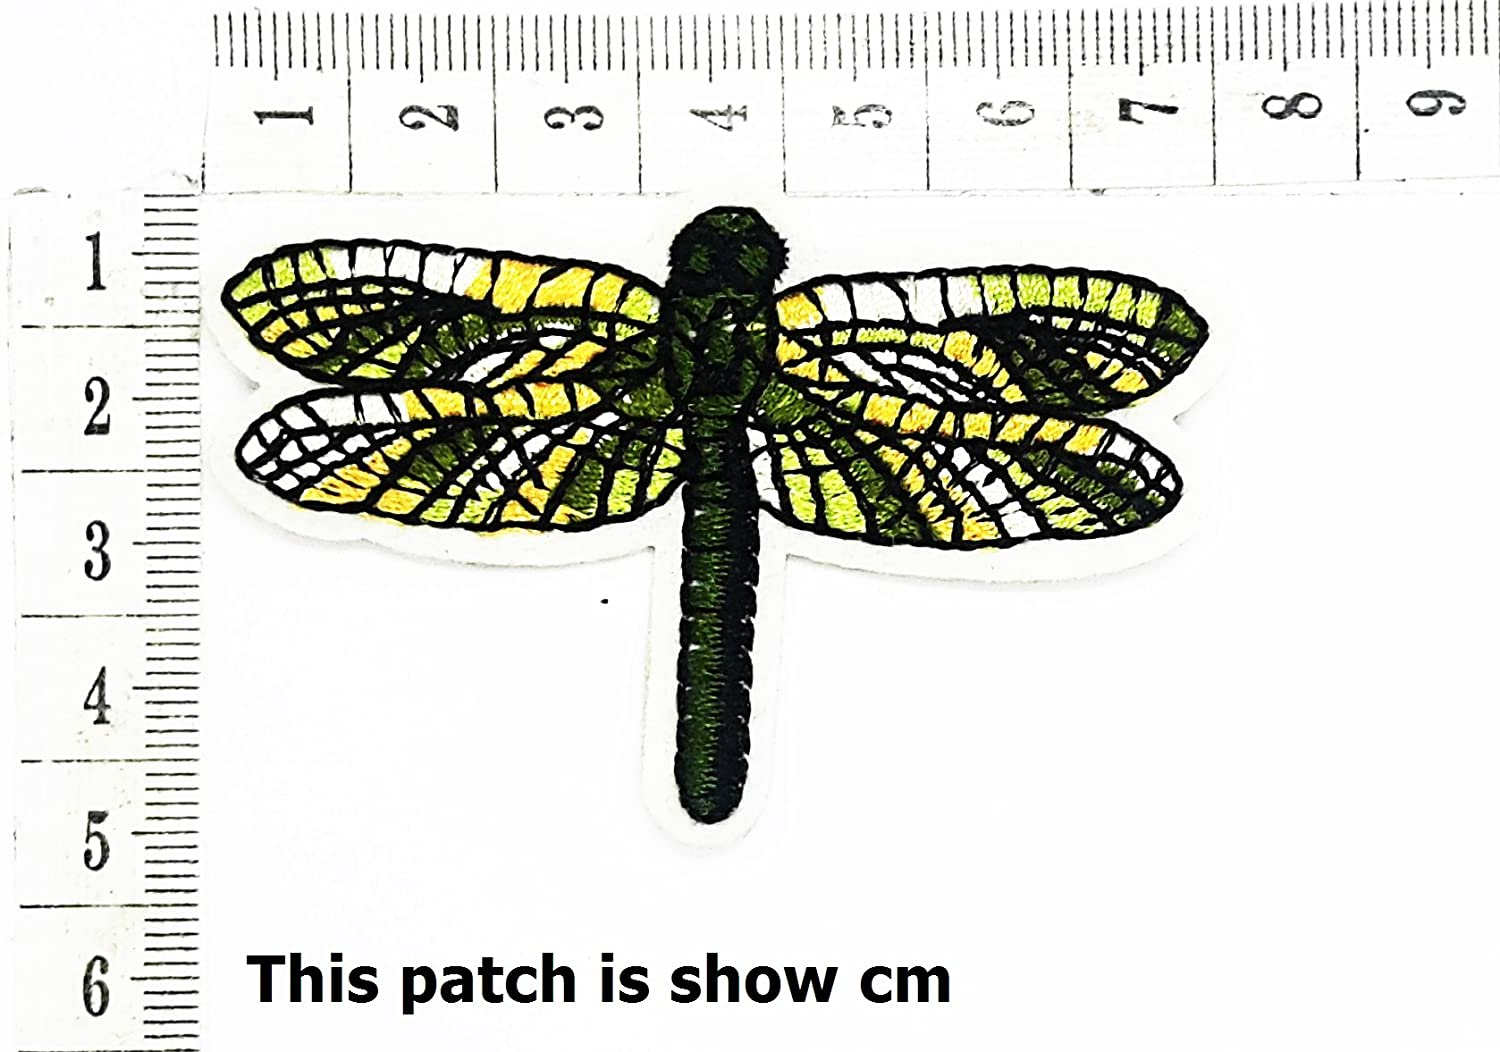 Metallic Dragonfly Patch Garden Insect Bug Cartoon Chidren Kids Embroidren Iron Patch/Logo Sew On Patch Clothes Bag T-Shirt Jeans Biker Badge Applique Devil Artwork